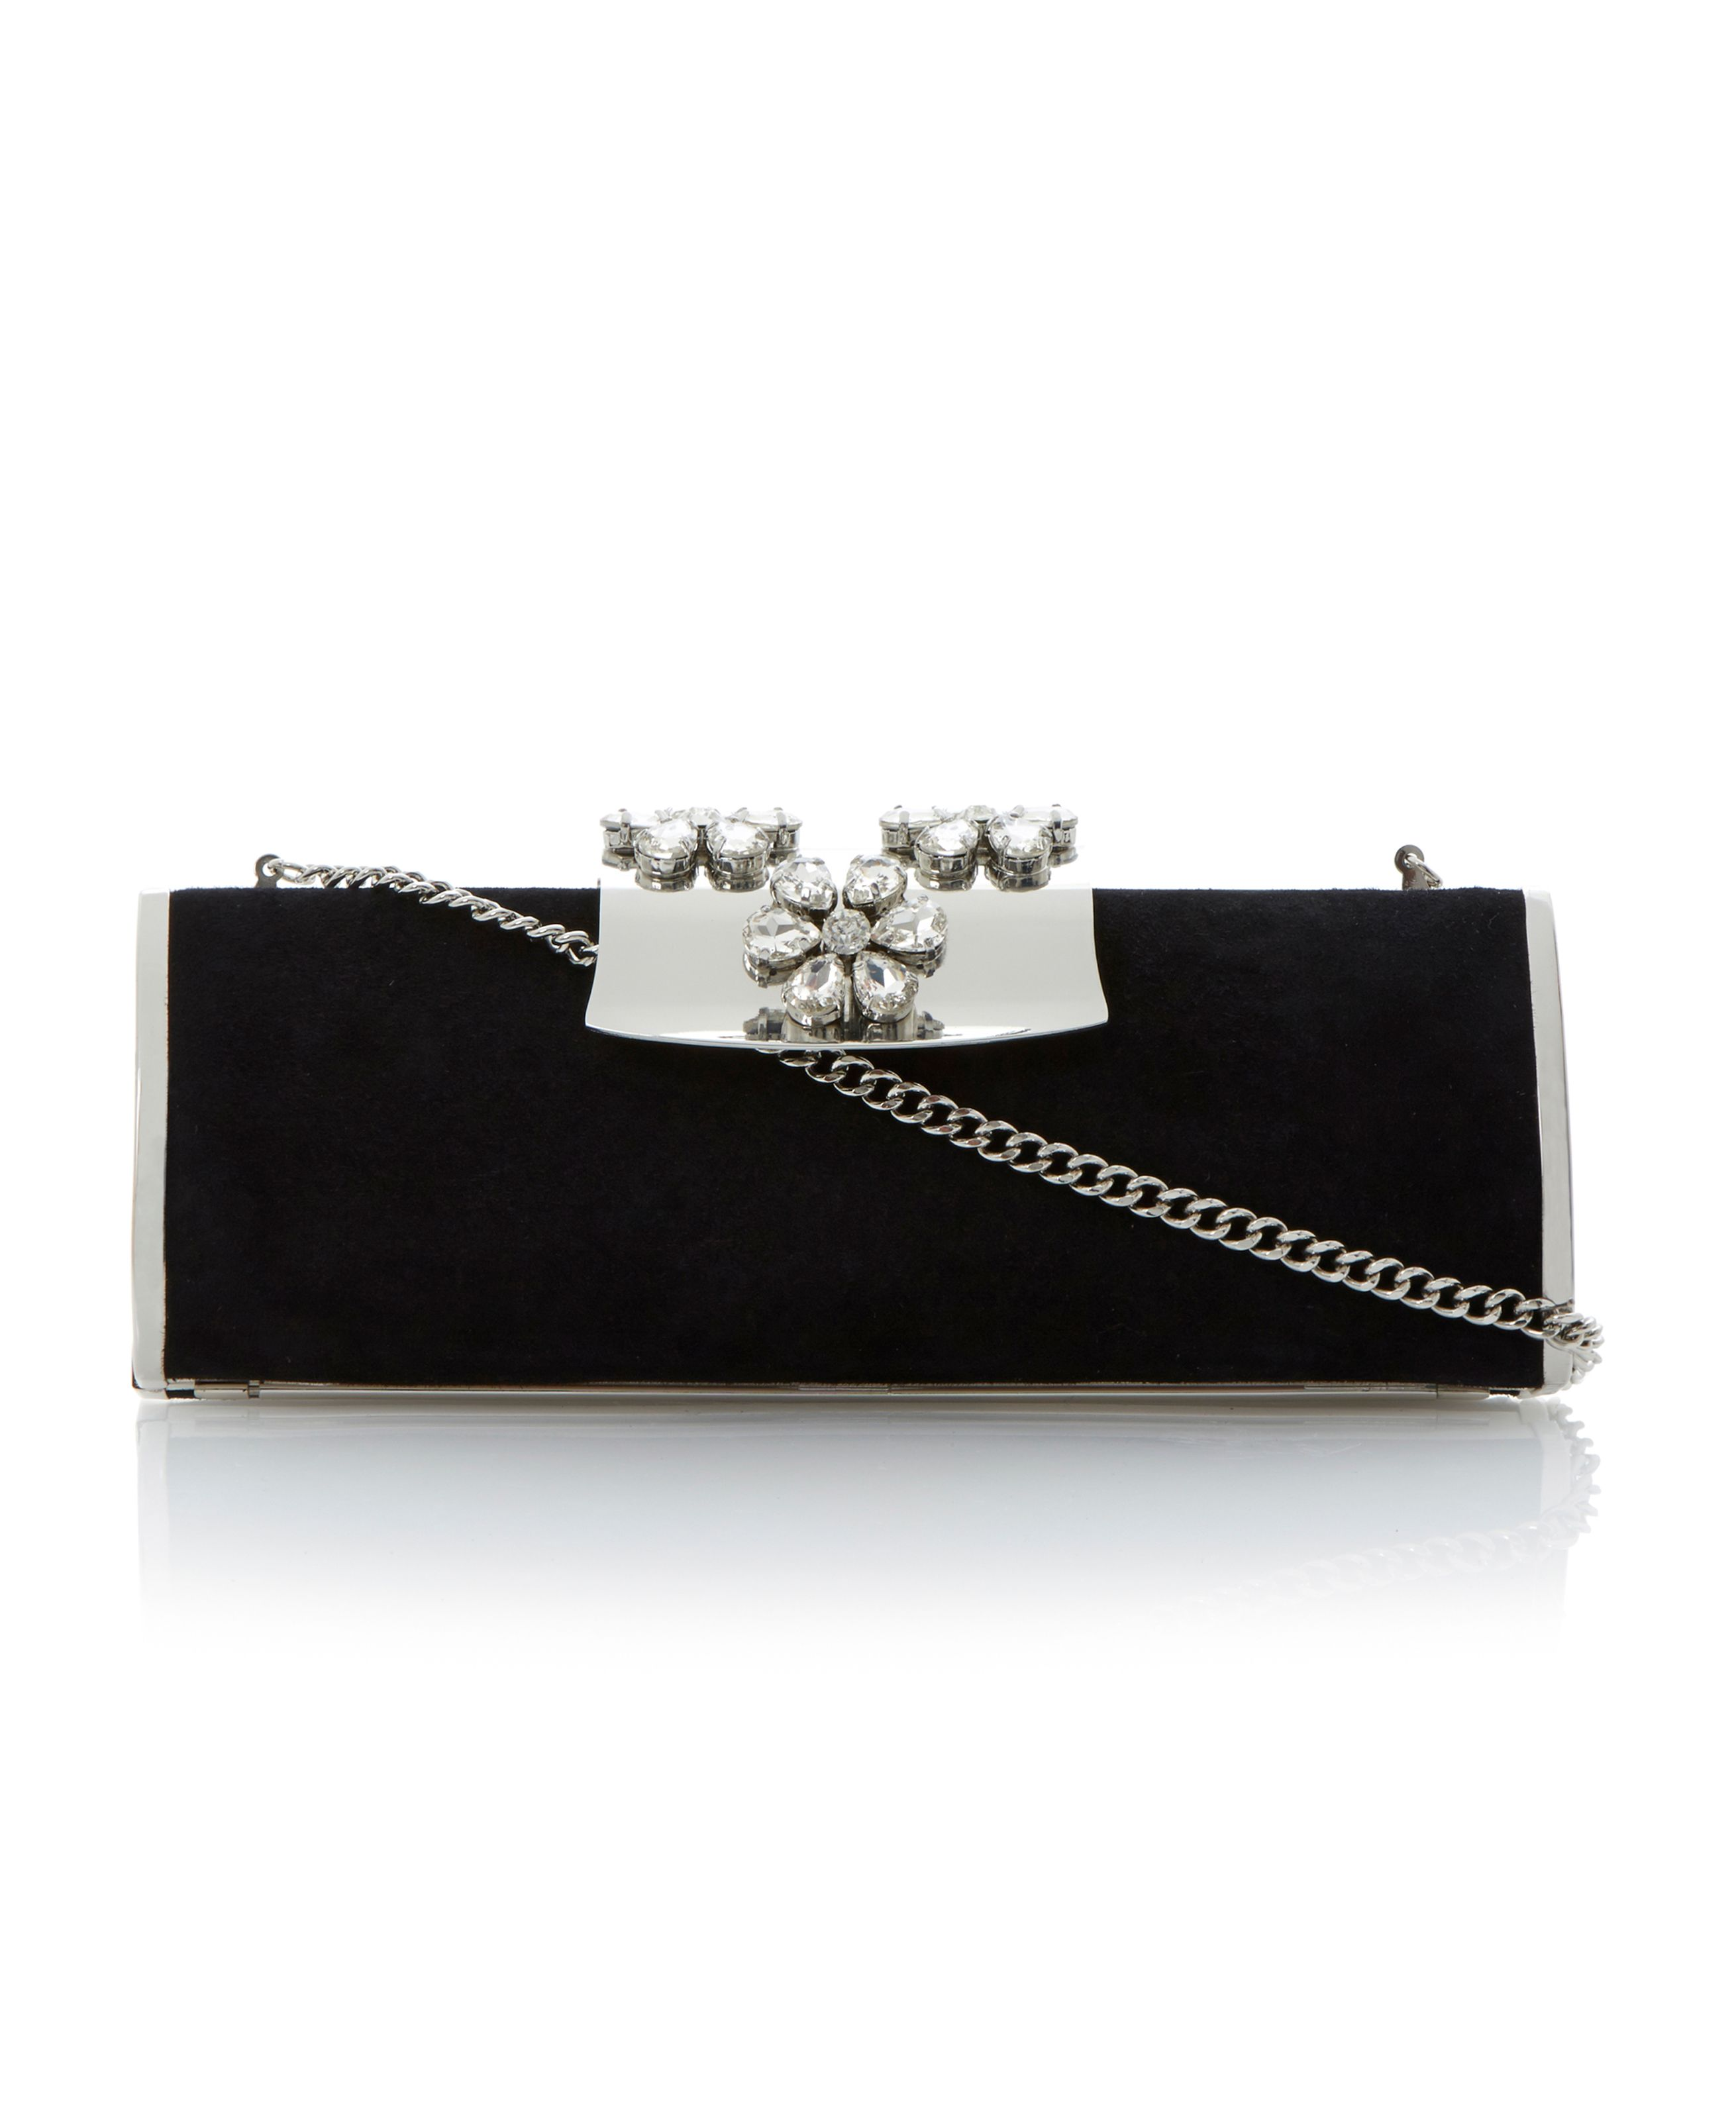 Baizey jewelled flower clutch bag